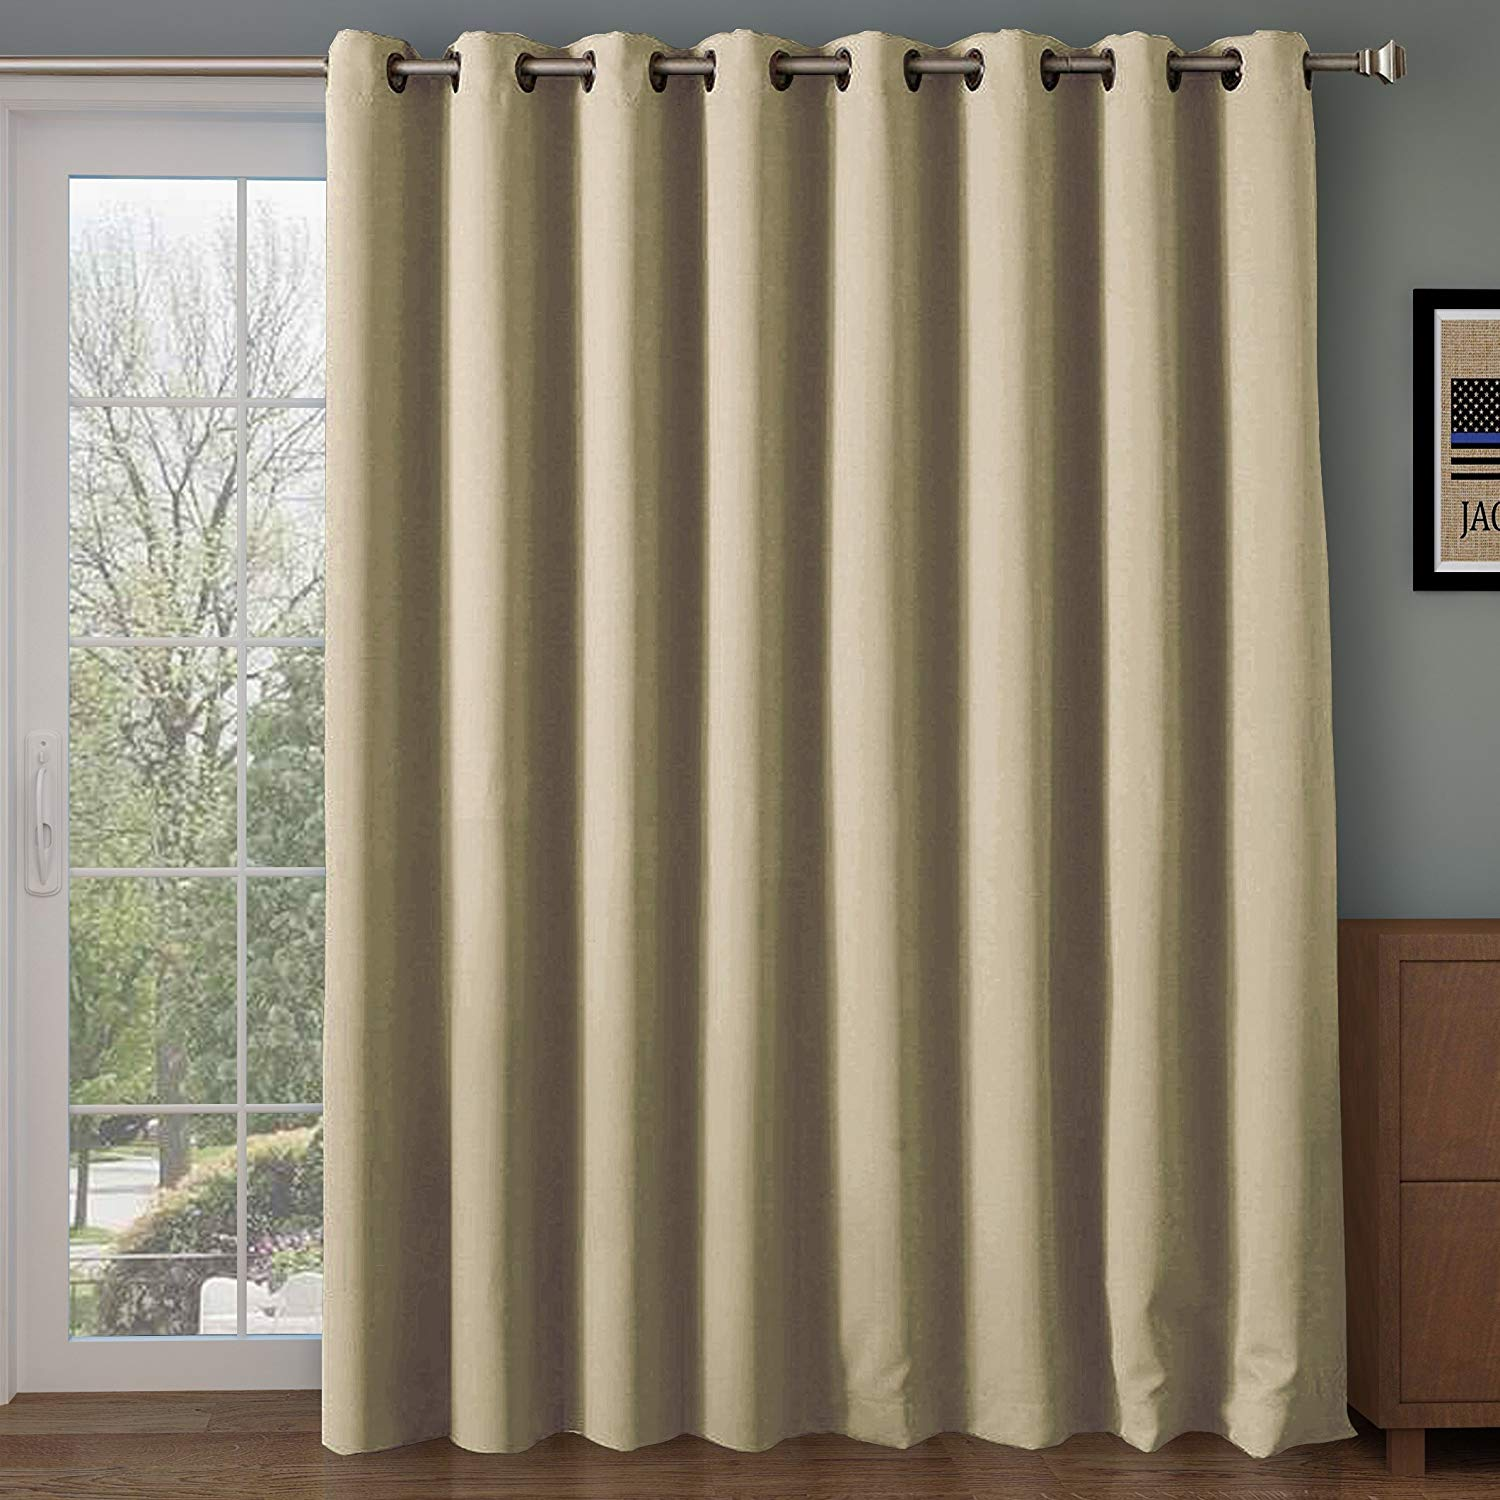 RHF Best Blackout Curtains Review by www.snoremagazine.com